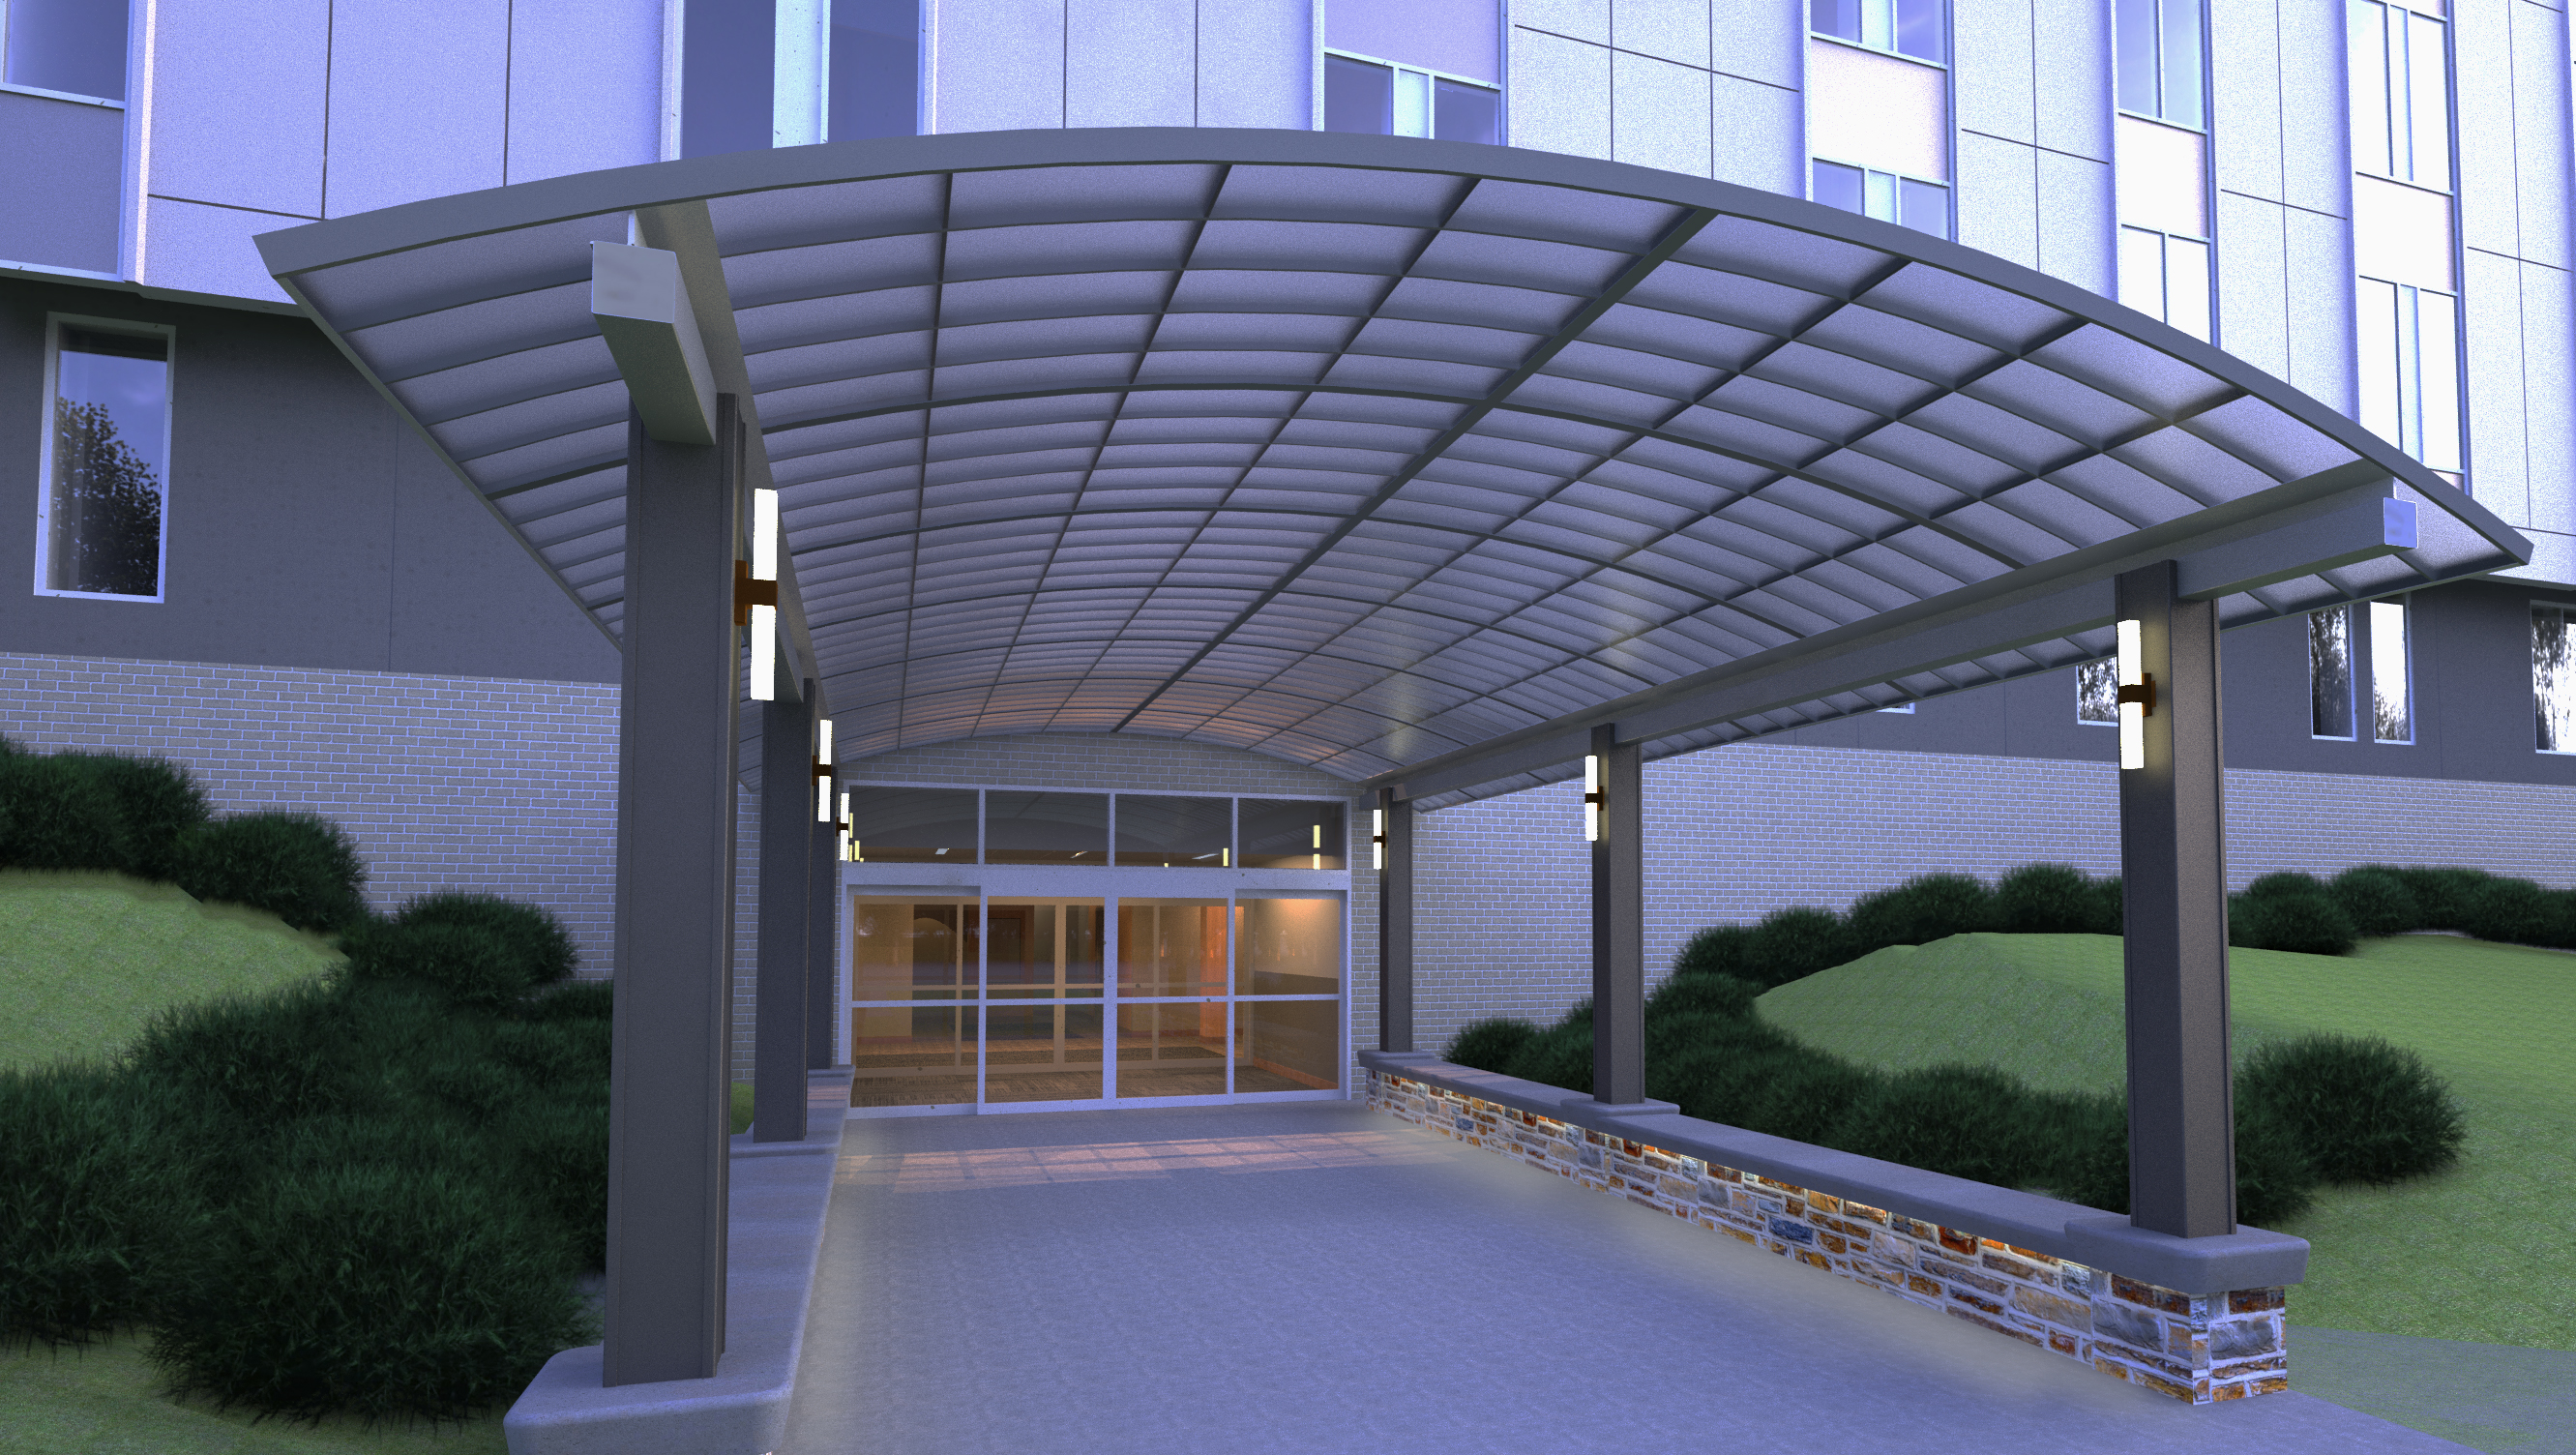 Duke Raleigh Hospital - North Pavilion